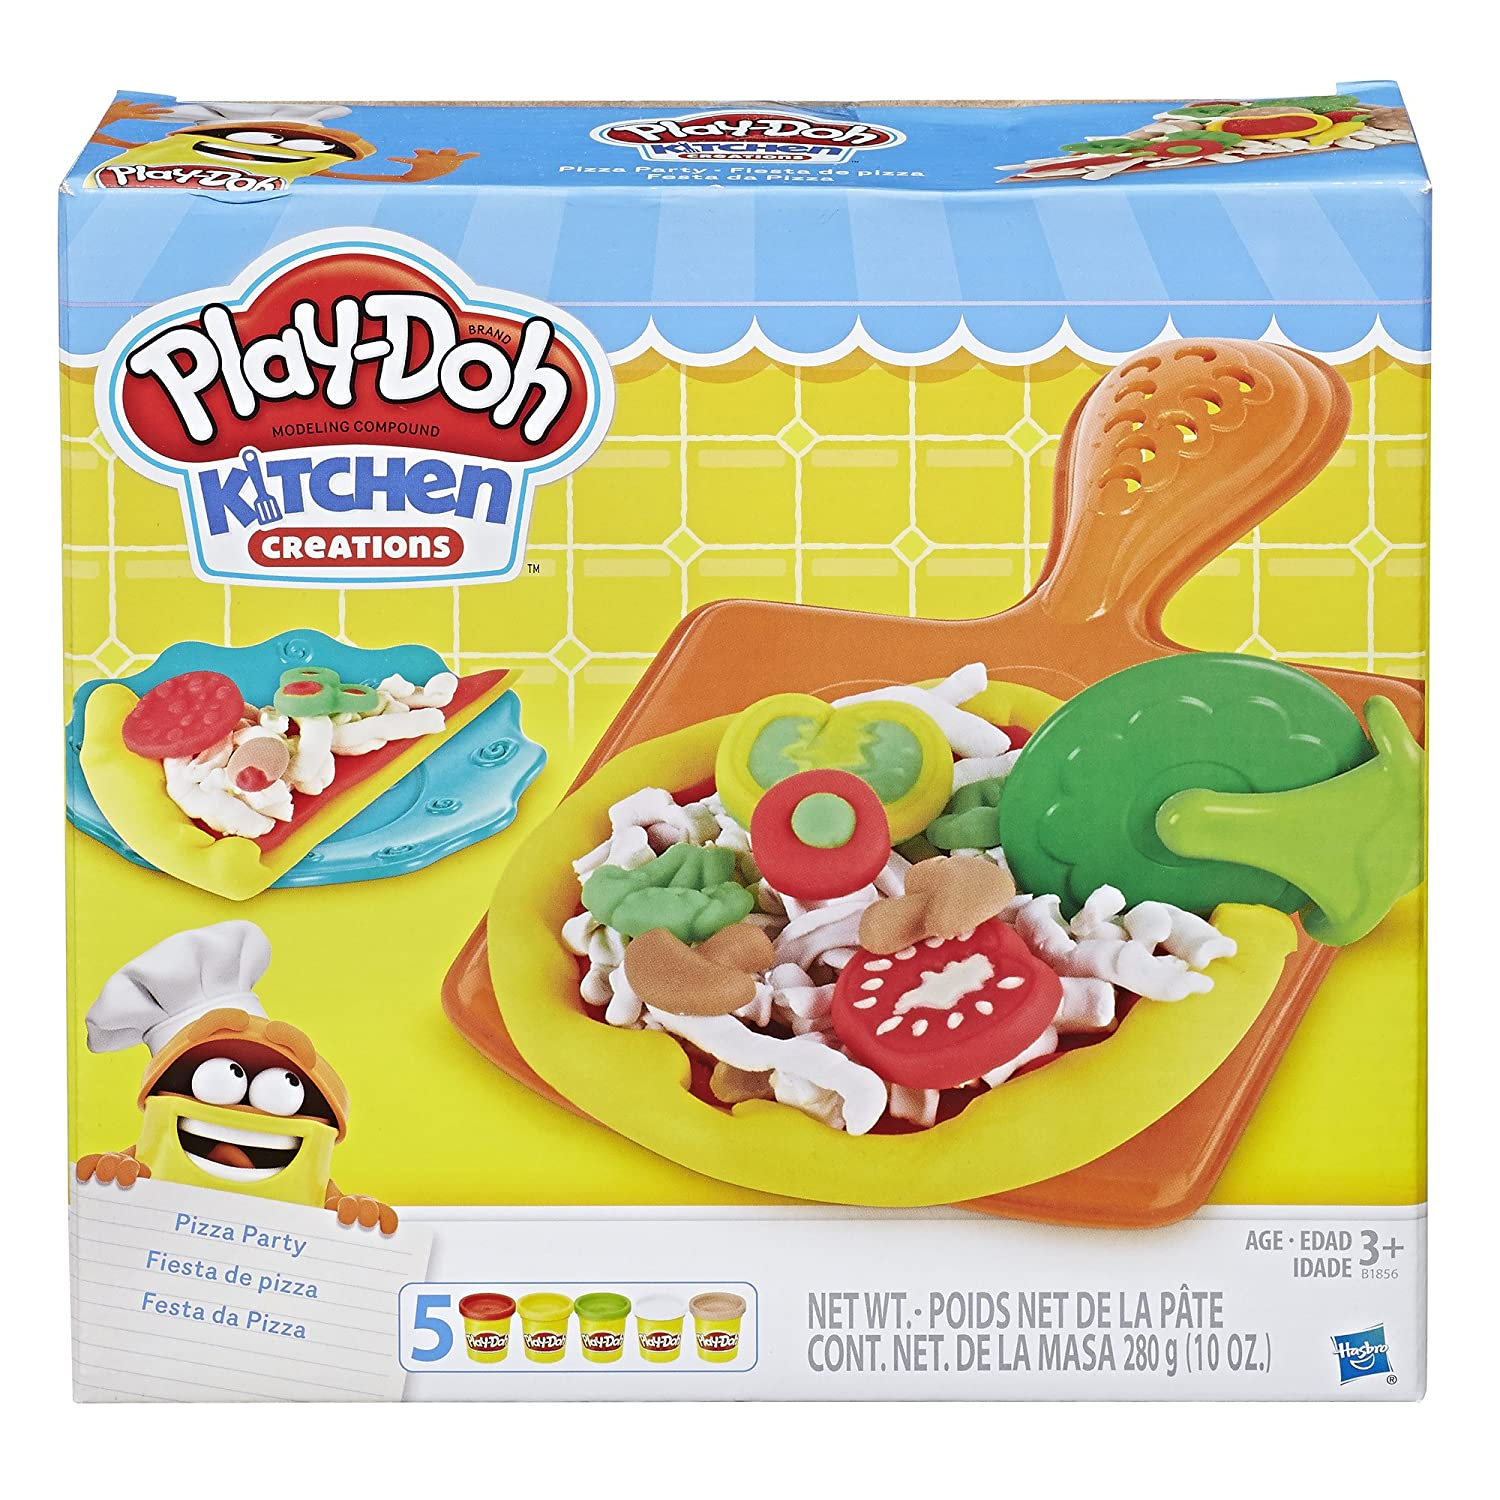 Amazon.com: Play-Doh Kitchen Creations Pizza Party: Toys & Games